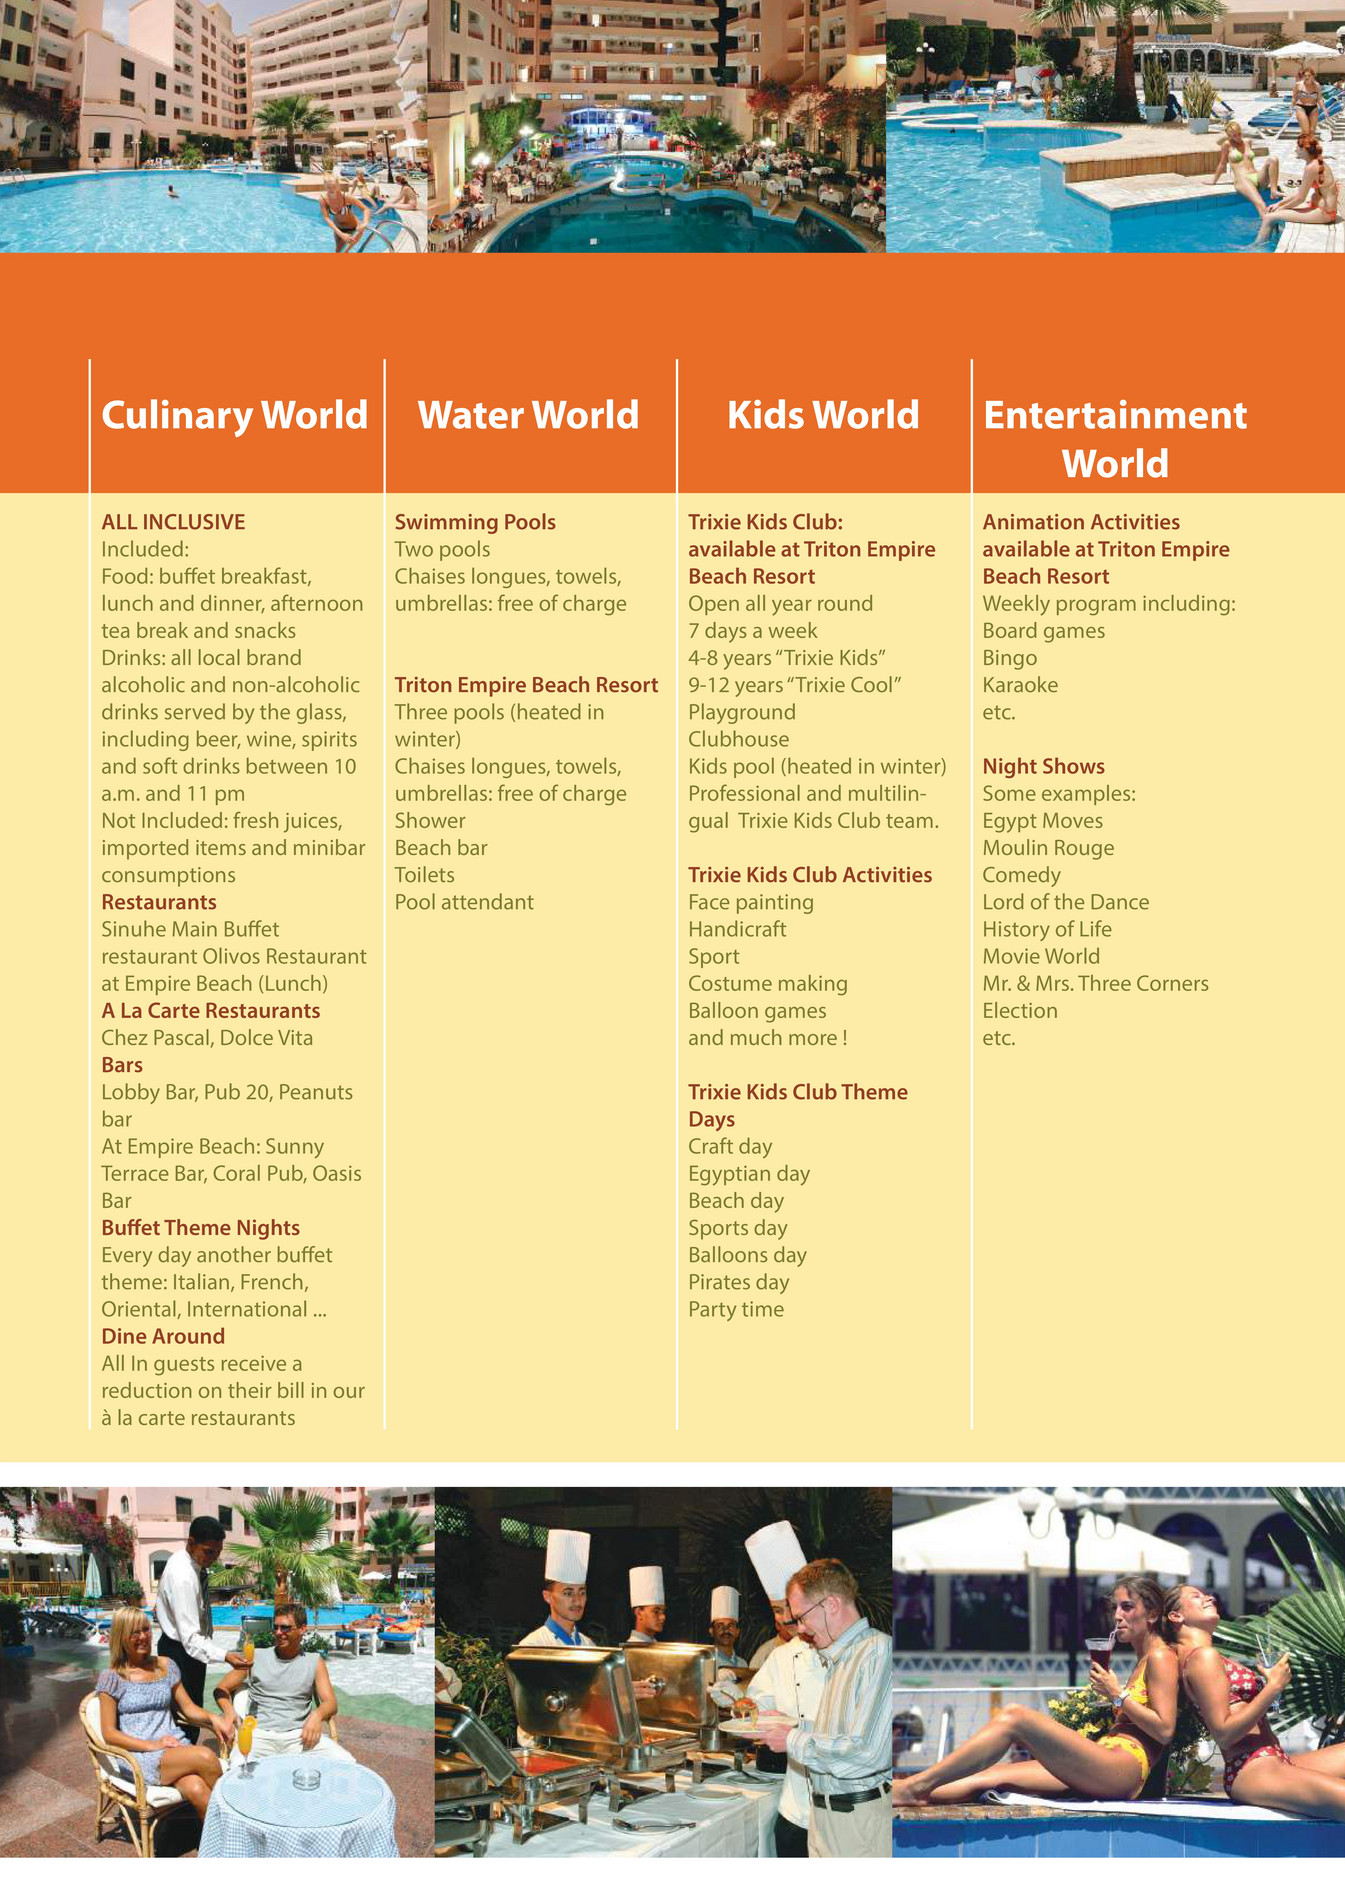 Ikontent Hotel Guide Page 26 27 Created With Publitas Com